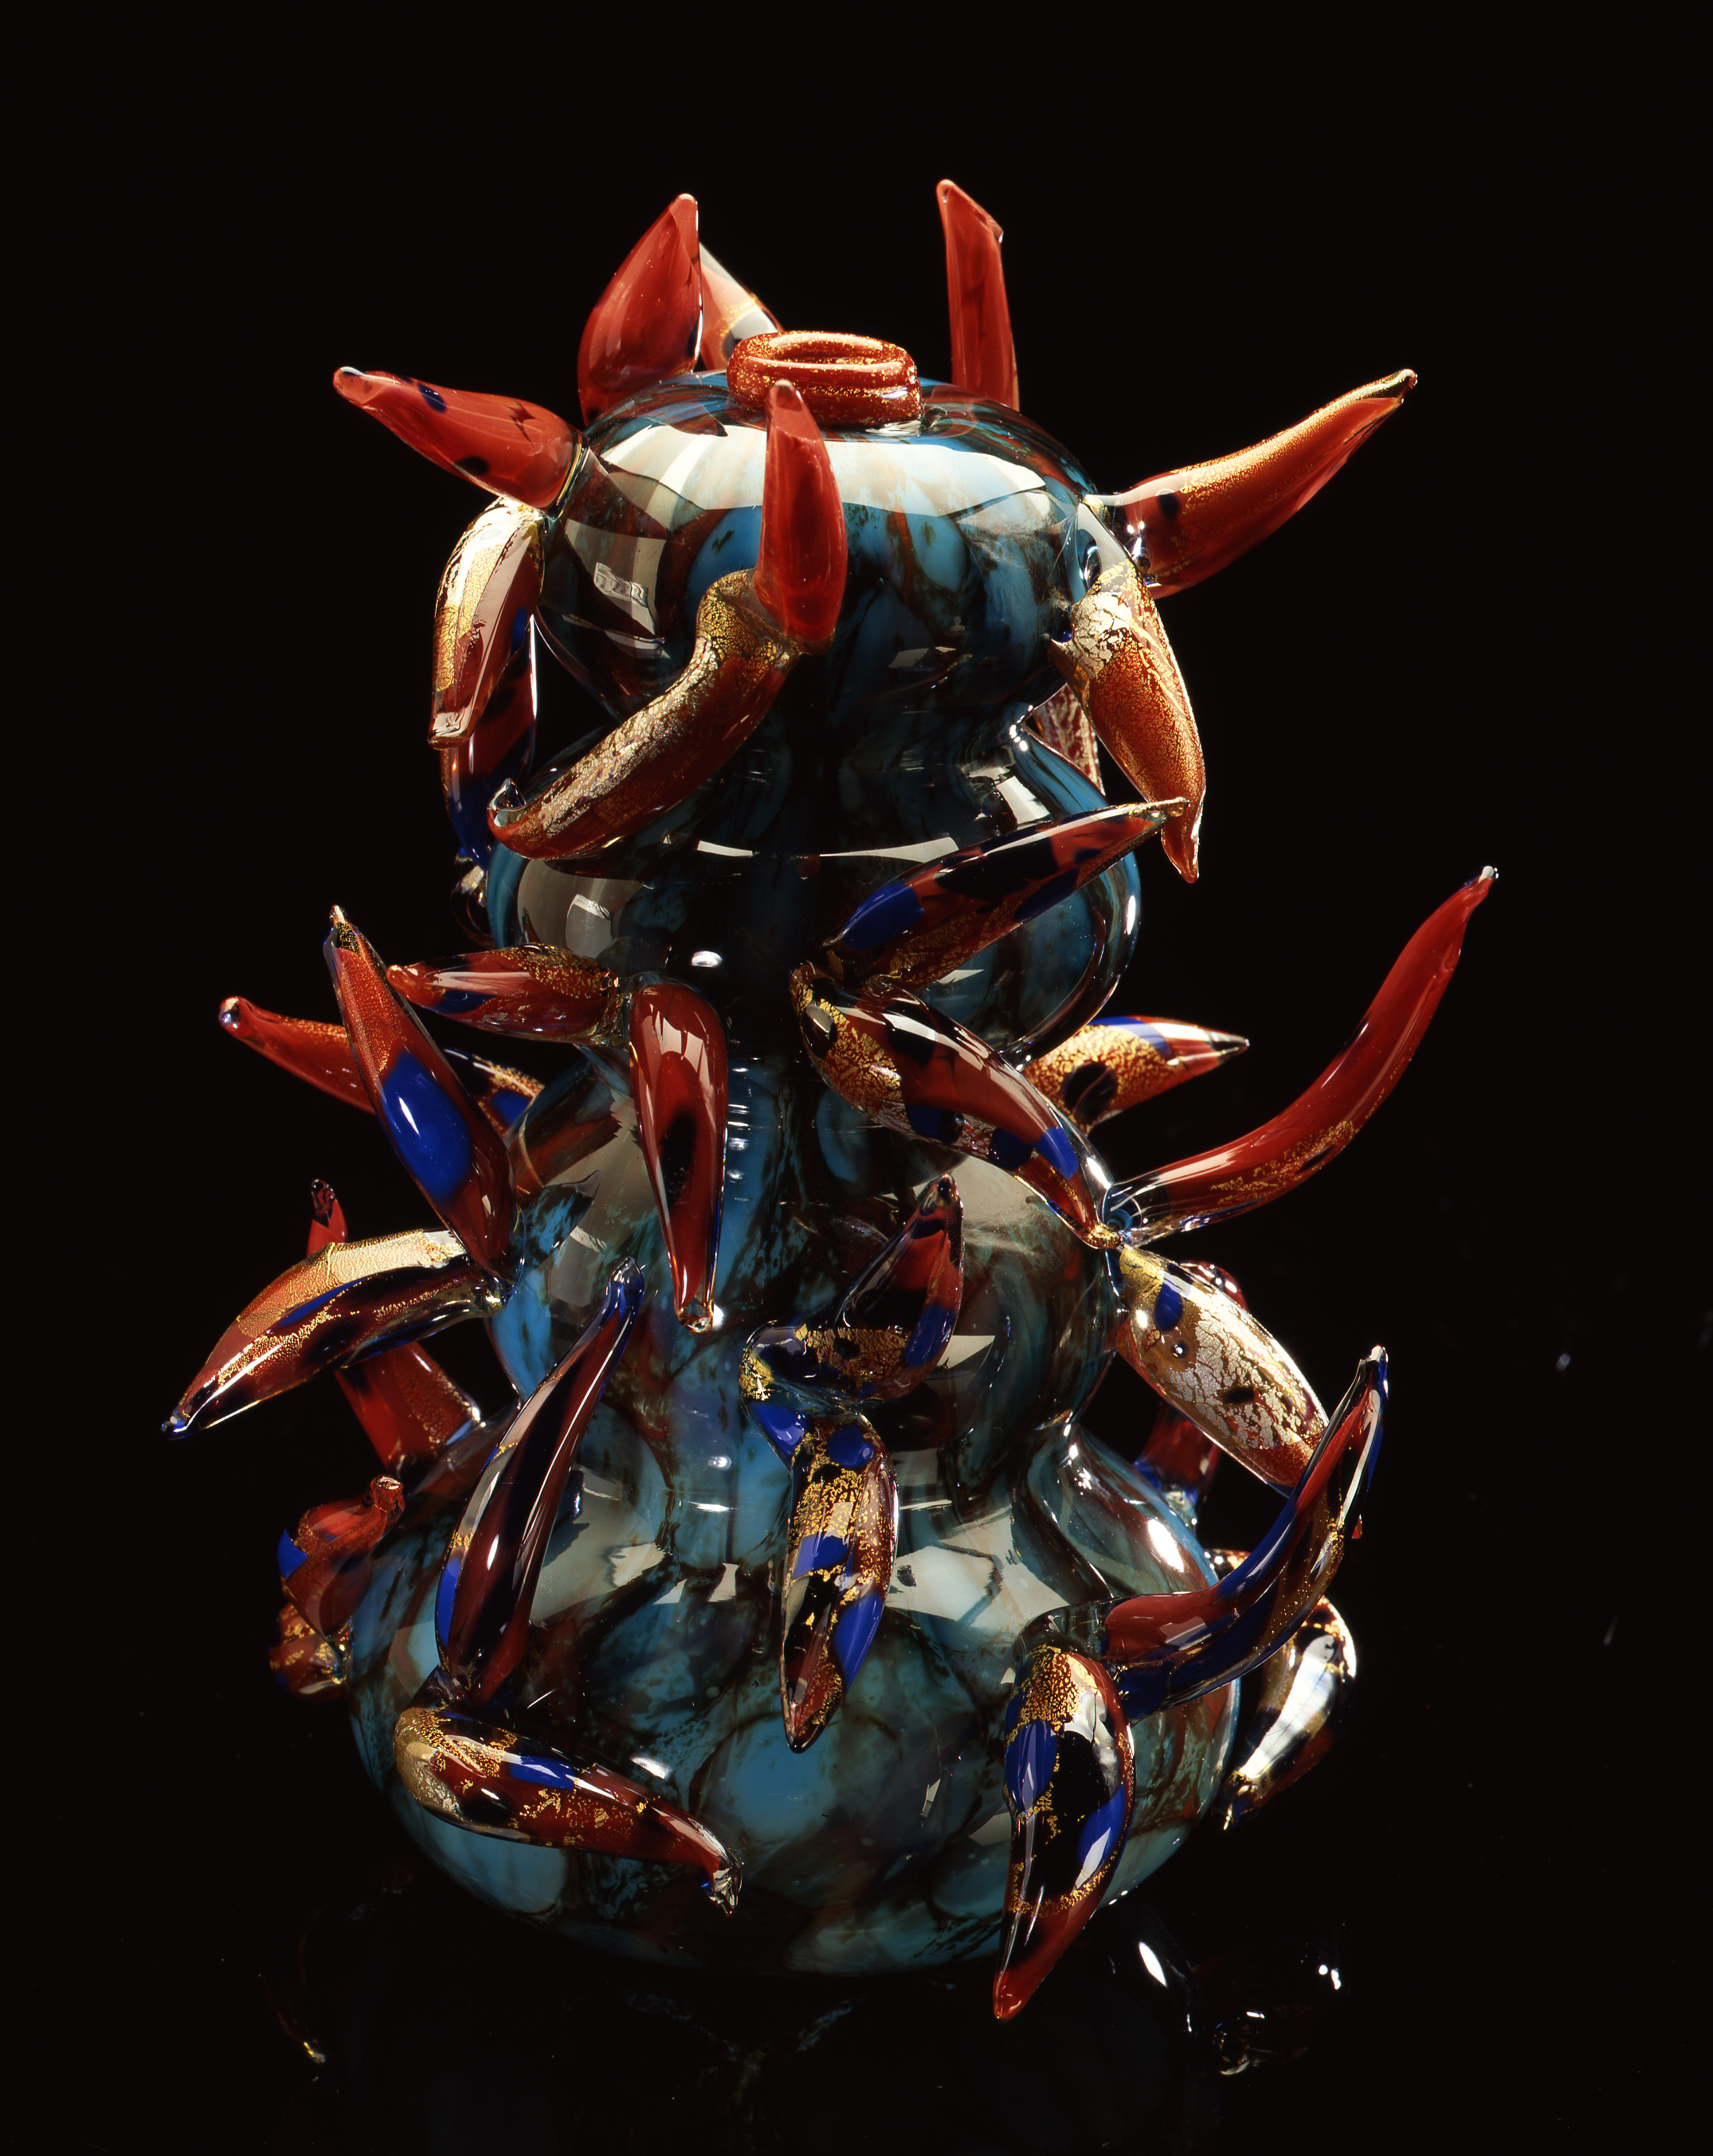 Dale Chihuly,  Cerulean Blue Piccolo Venetian with Red Prunts  (1994, glass, 11 x 7 x 7 inches)